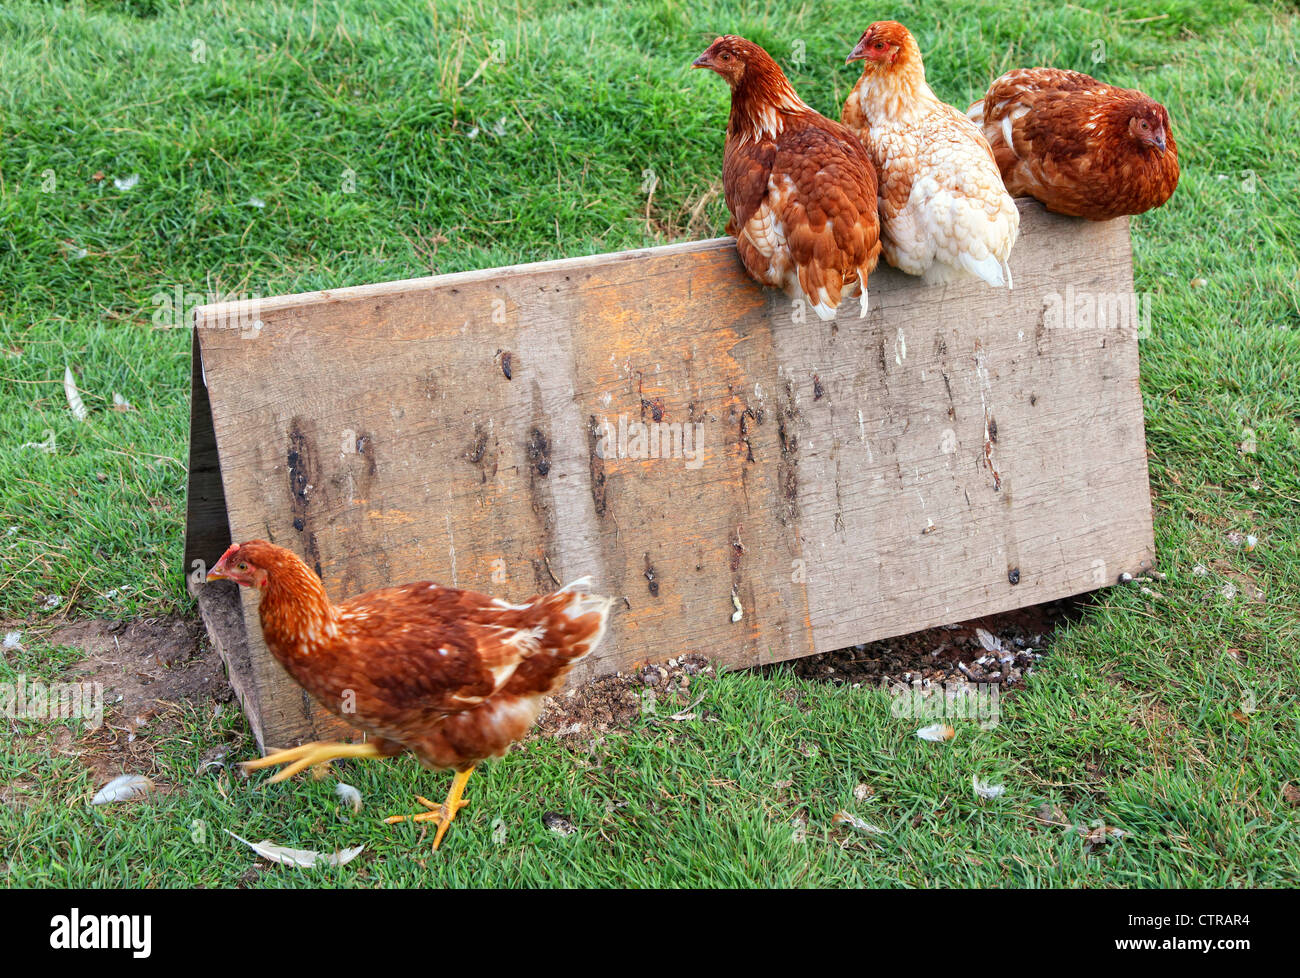 Organic free range chickens in their grassed enclosure. - Stock Image